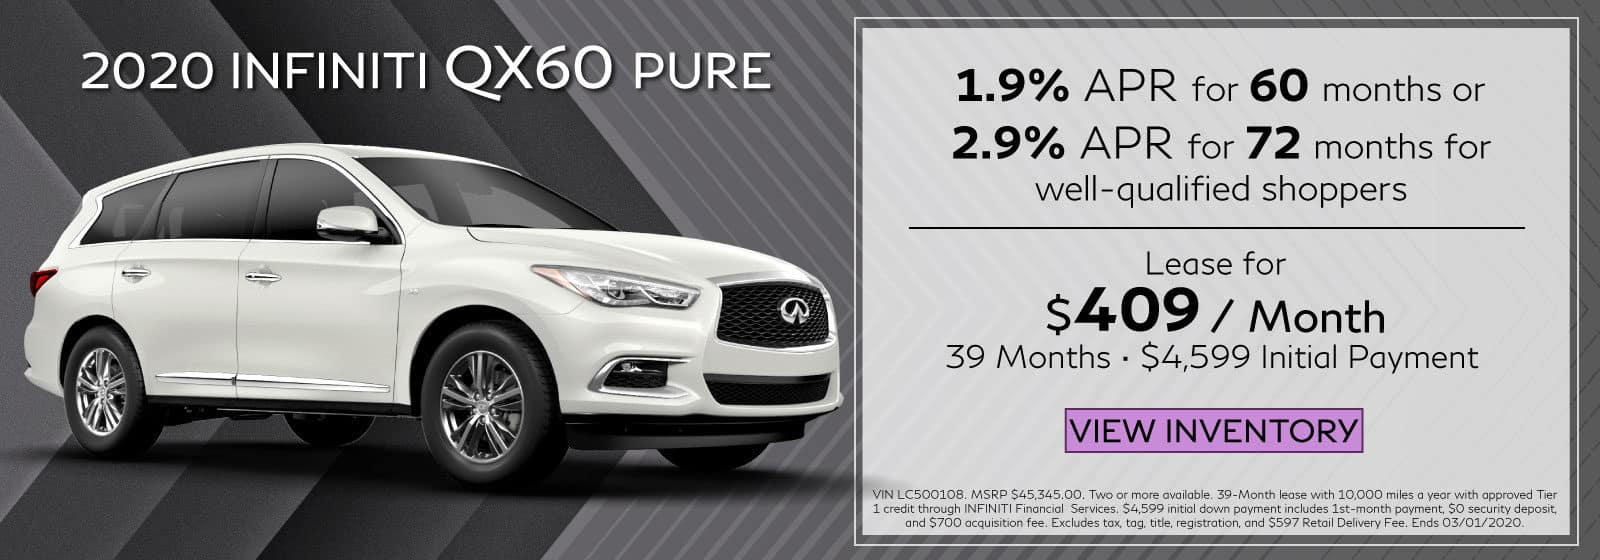 2020 QX60 PURE. $409 a month for 39 months. $4,599 initial payment. OR 1.9% APR for 60 months. White QX60 on black and gray abstract background. View Inventory button.